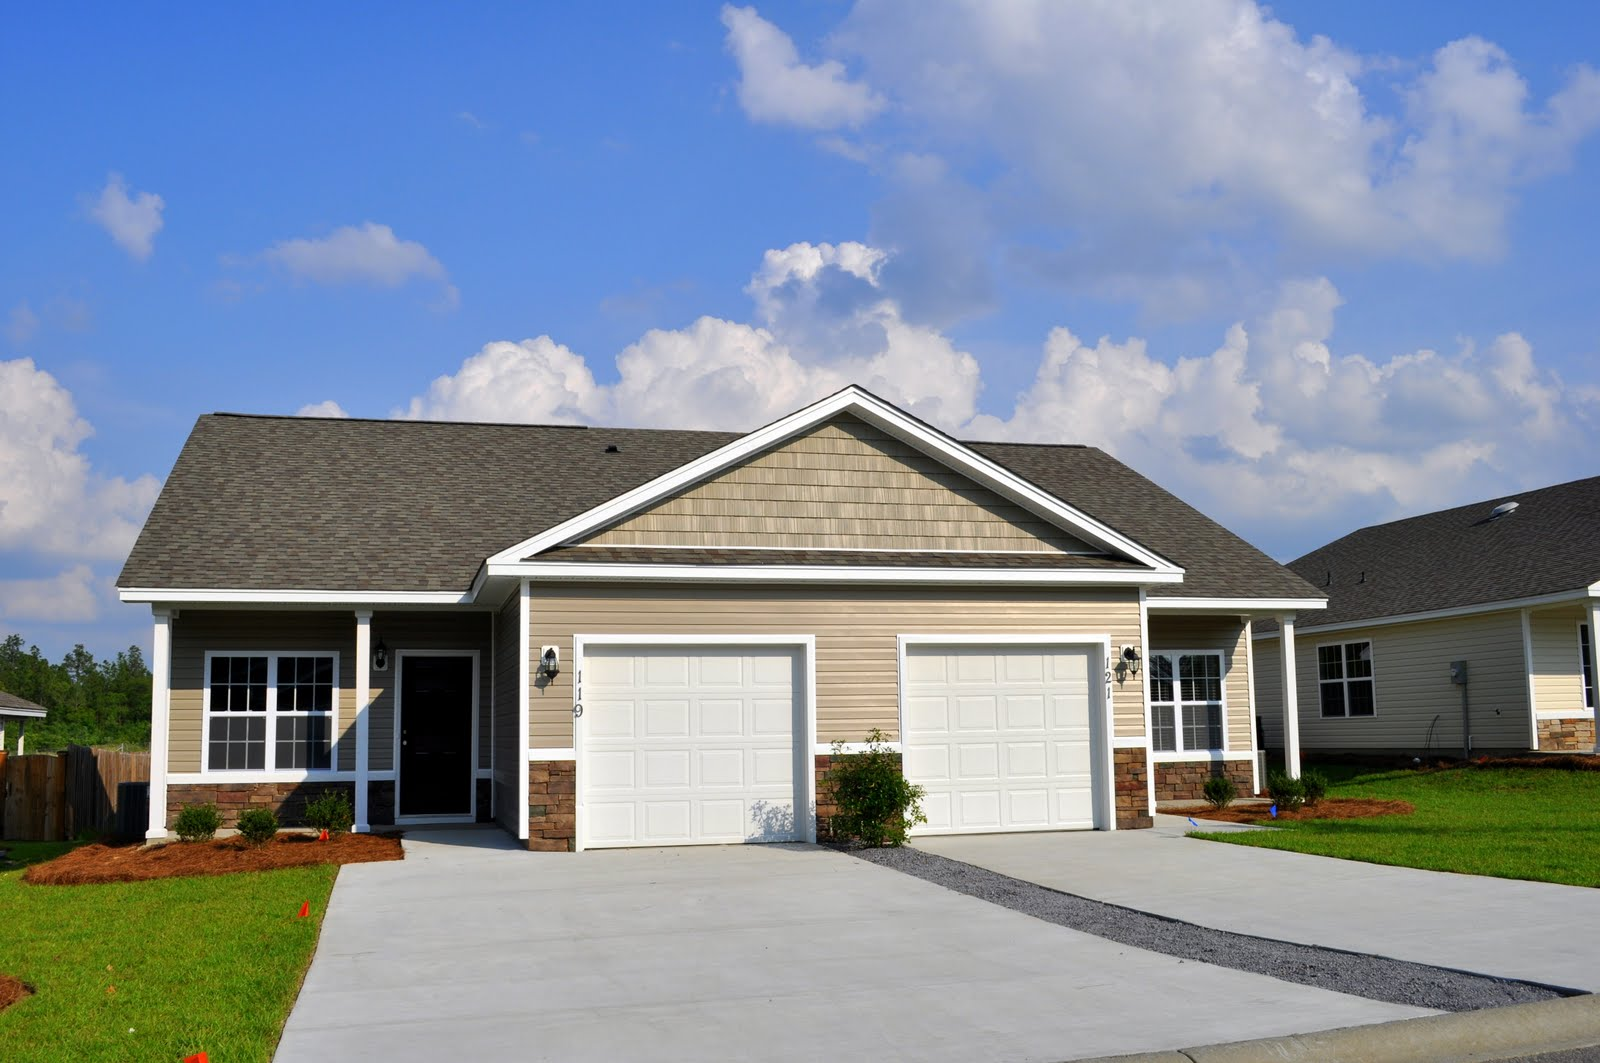 Natalie's New Home Network: New Patio Homes in Lexington ...